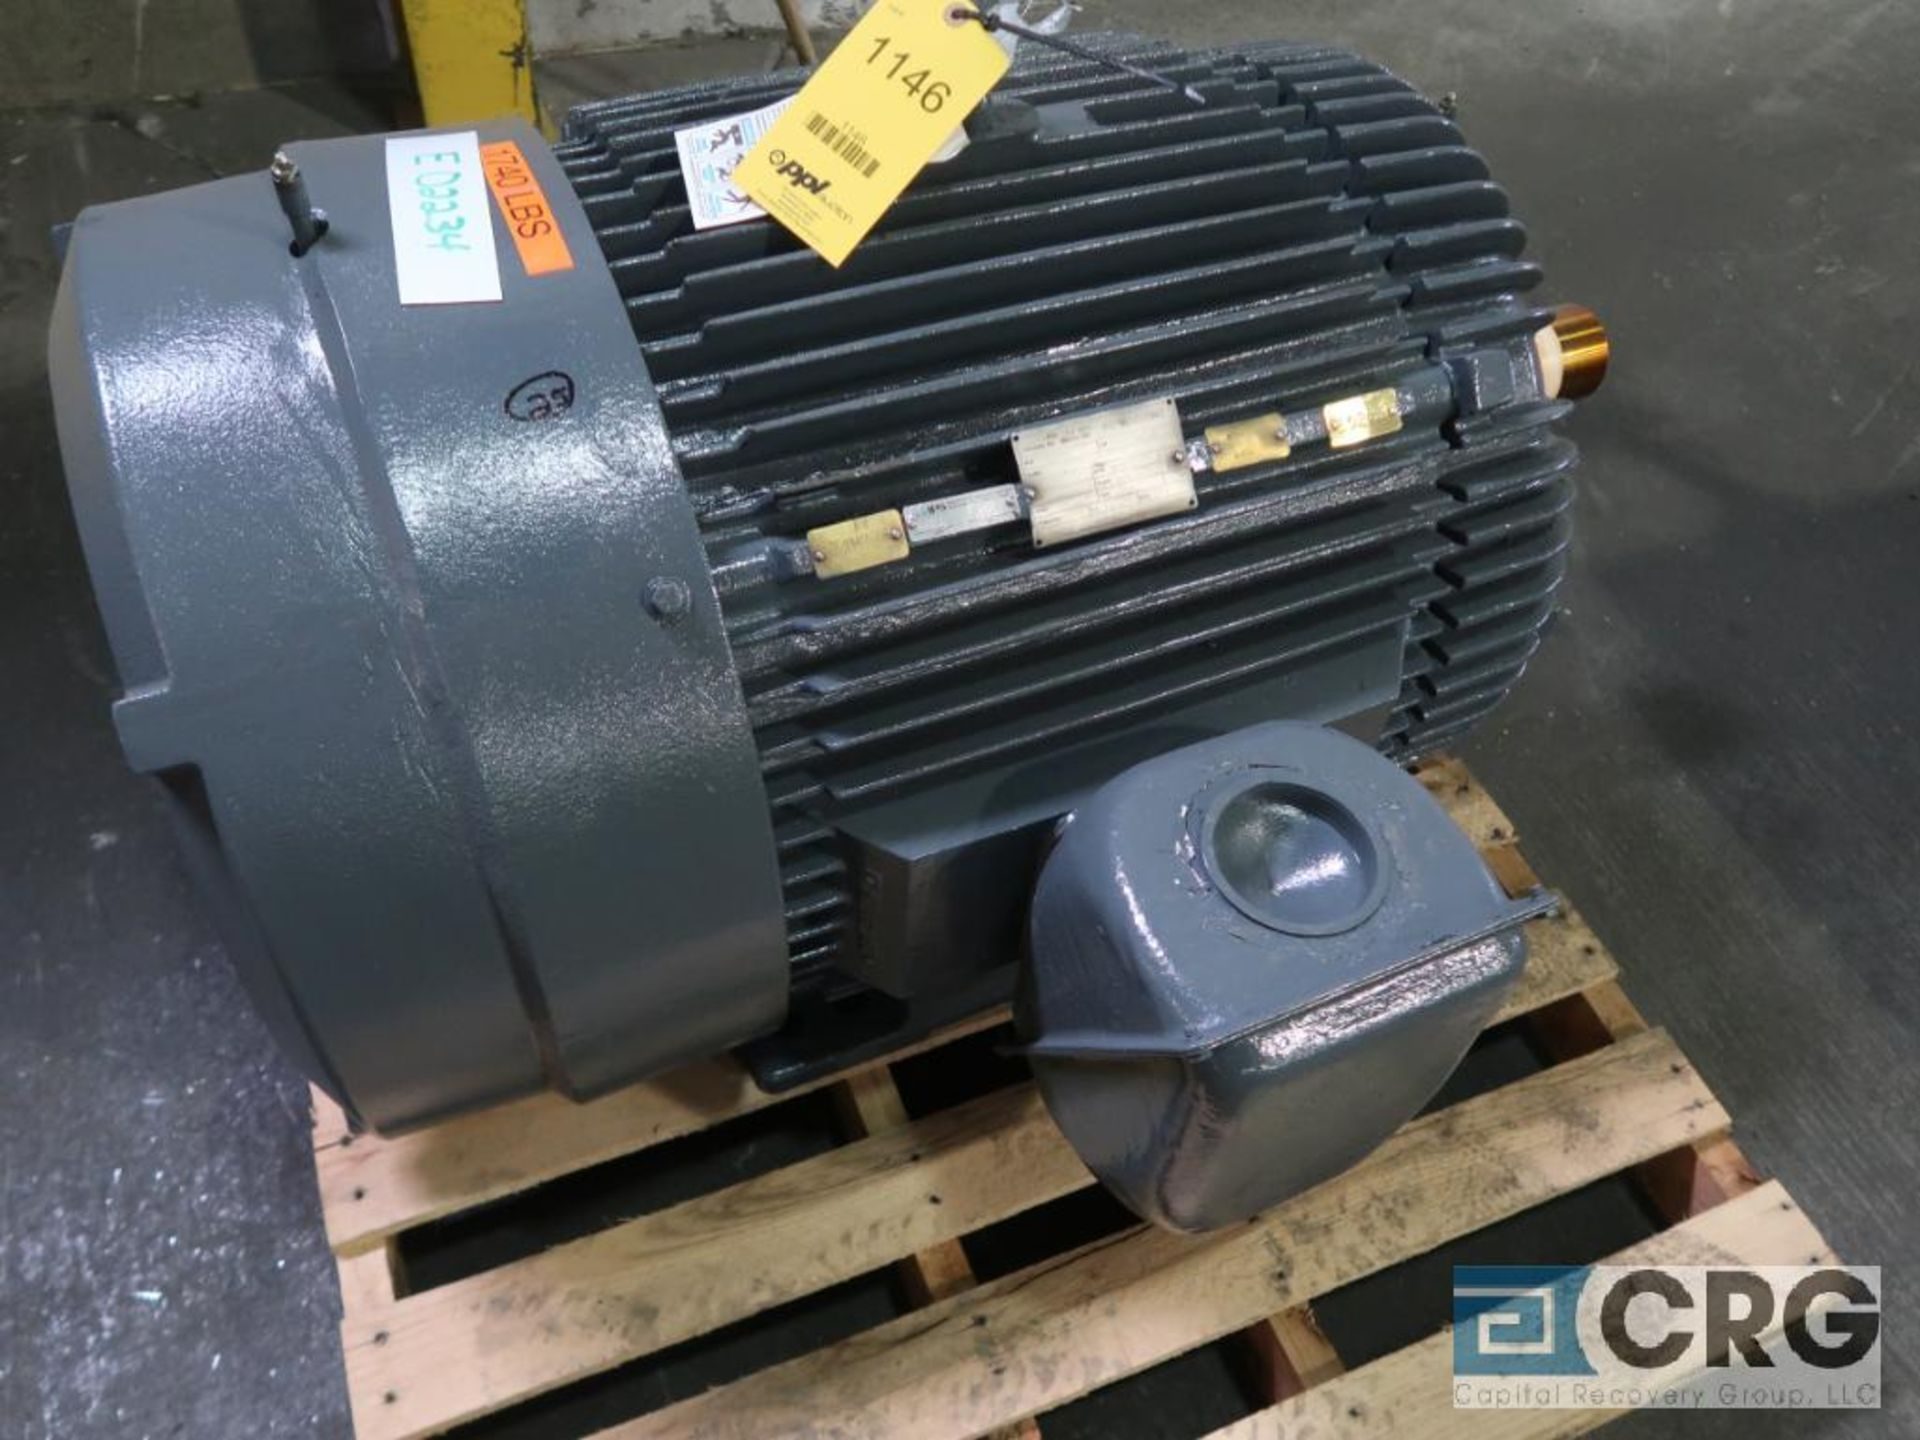 Reliance electric motor, 150 HP, 1,760 RPMs, 460 volt, 3 ph., 445T frame (Finish Building)